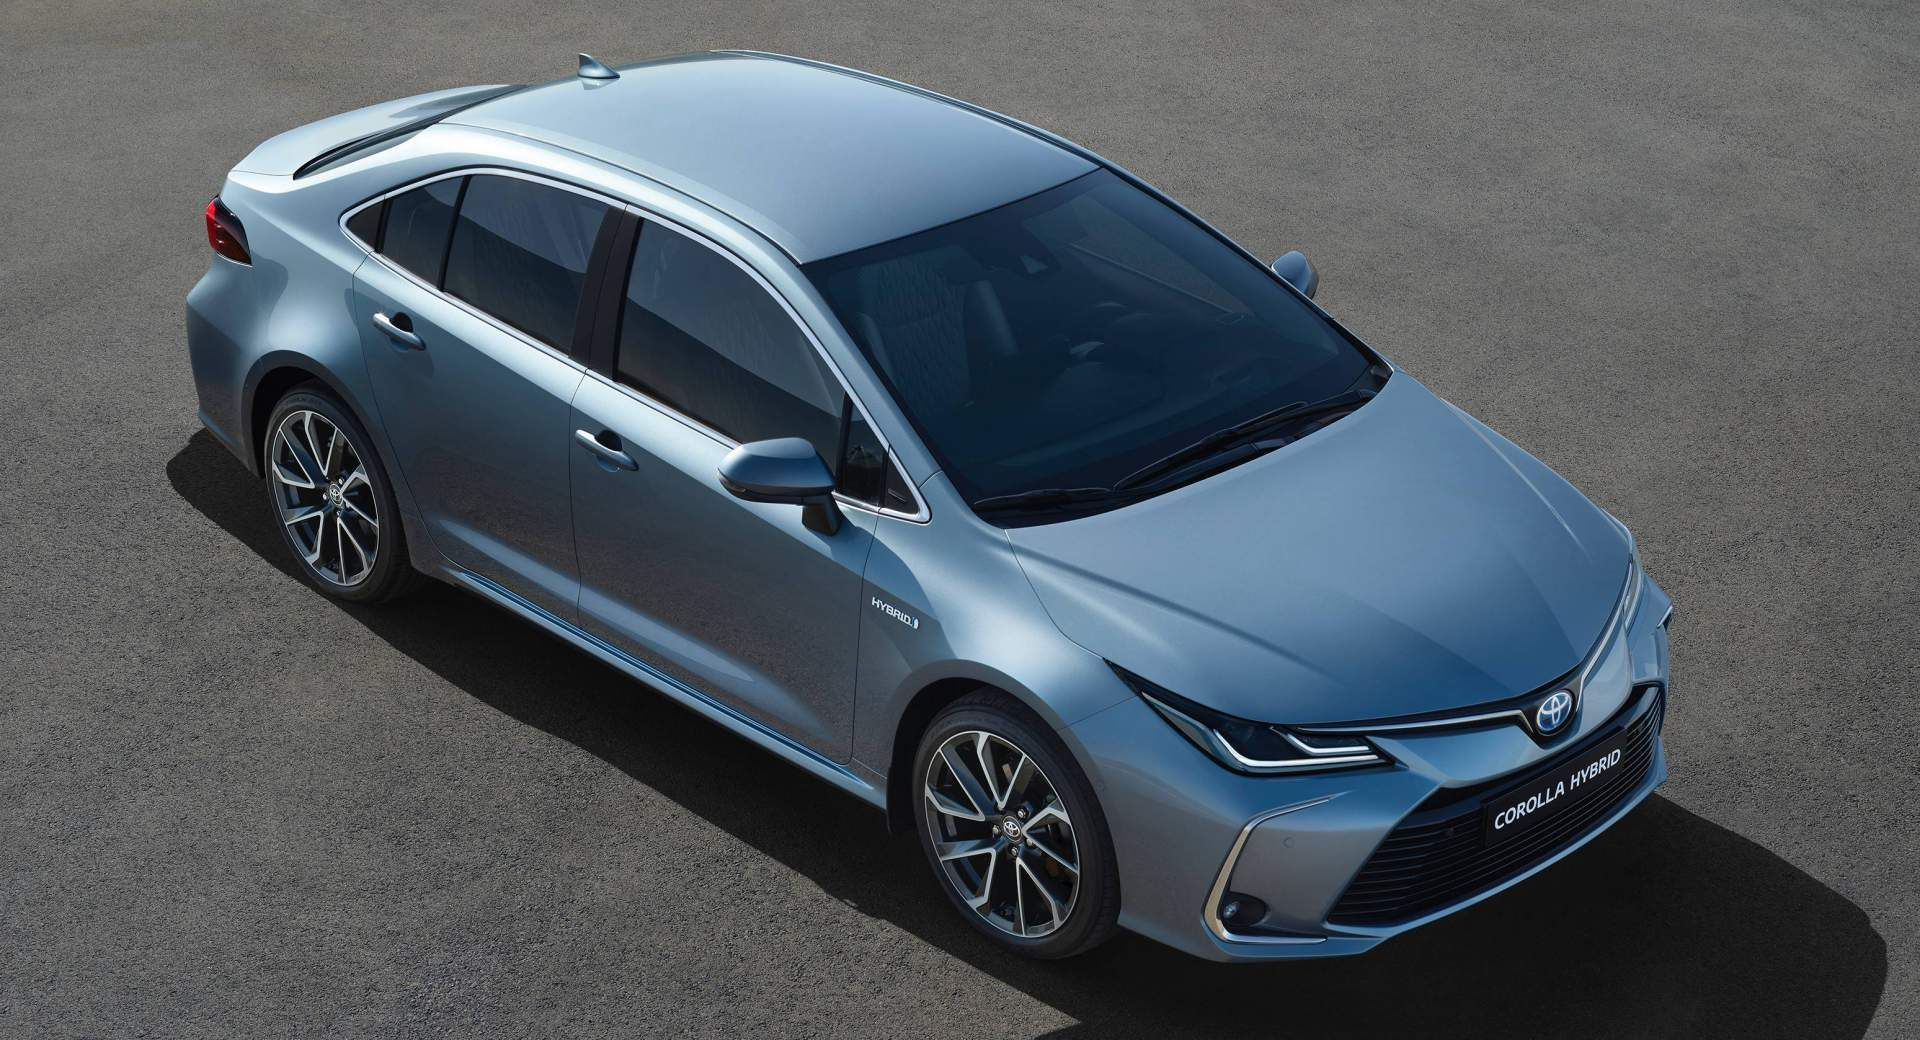 Review Toyota Corolla Sedan Hybrid 2019 Review And Images Feels Free To Follow Us Di 2020